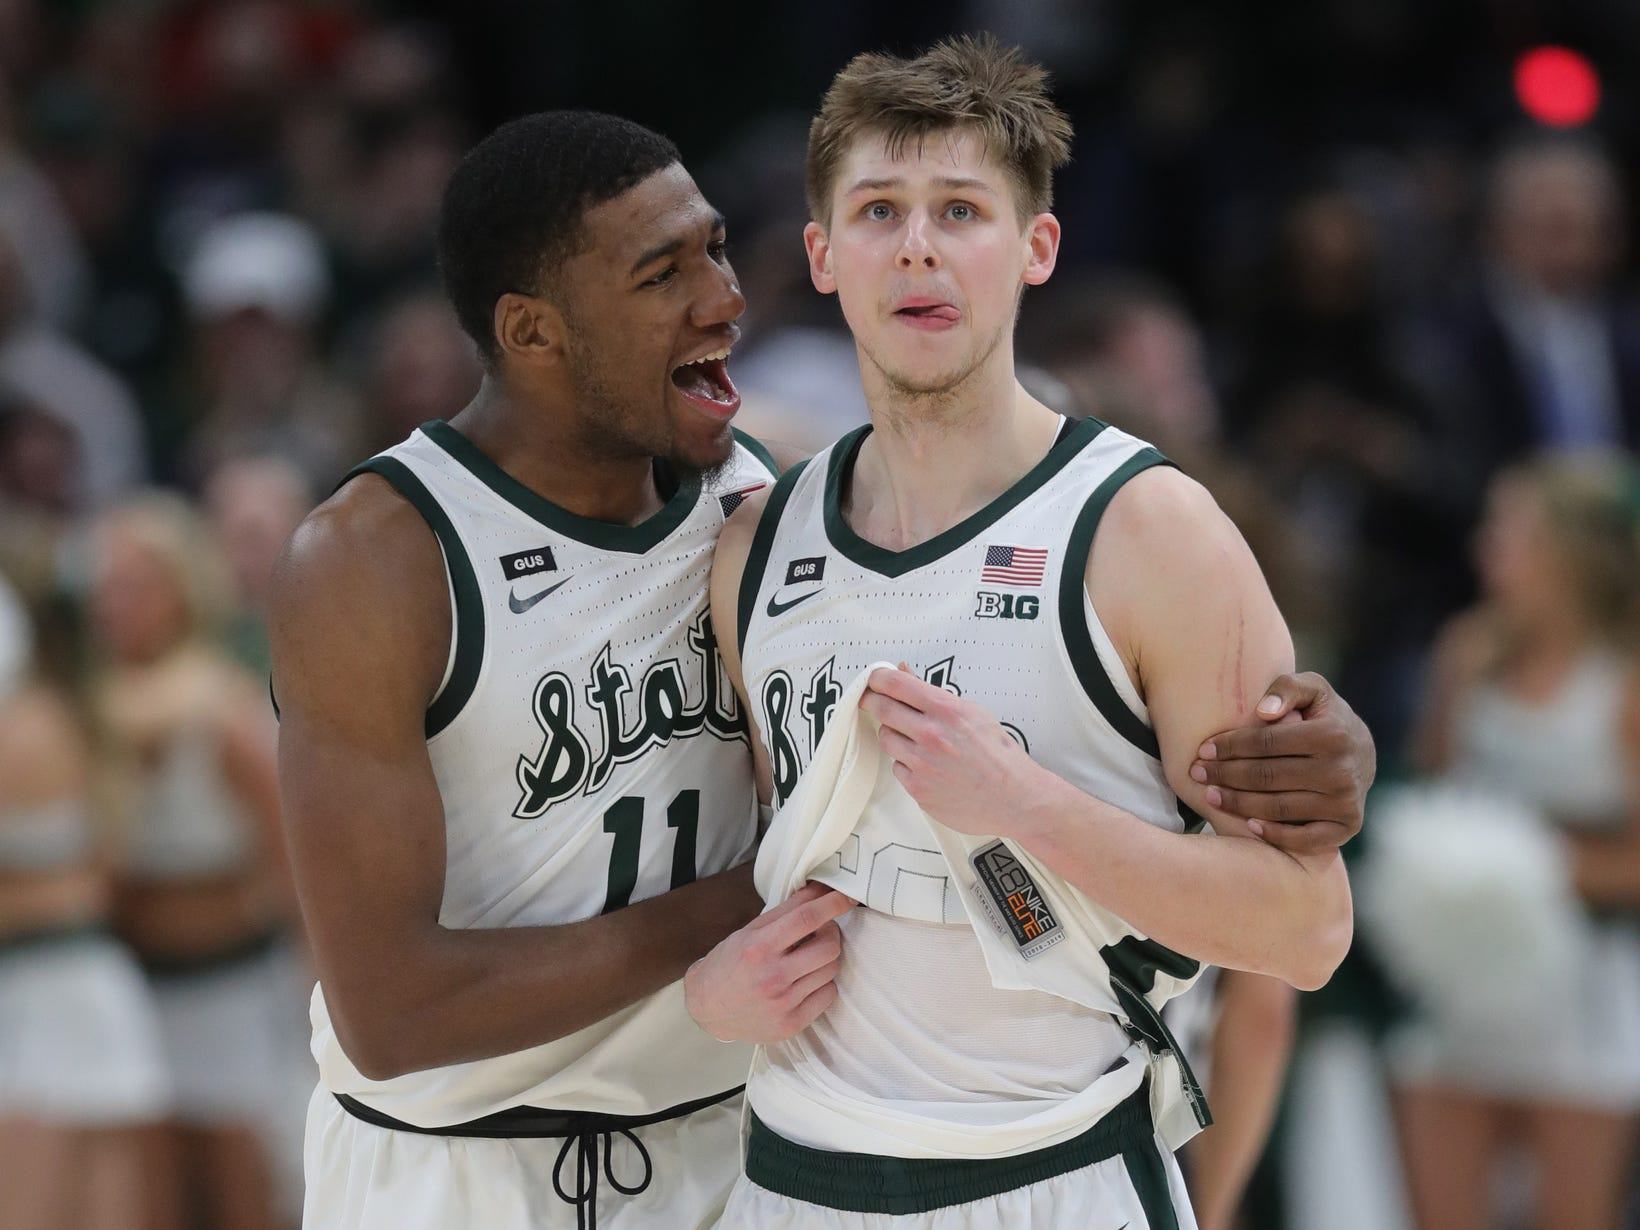 Michigan State's Aaron Henry, left, and Matt McQuaid celebrate the 65-60 win against Michigan in the Big Ten tournament championship Sunday, March 17, 2019 in Chicago.